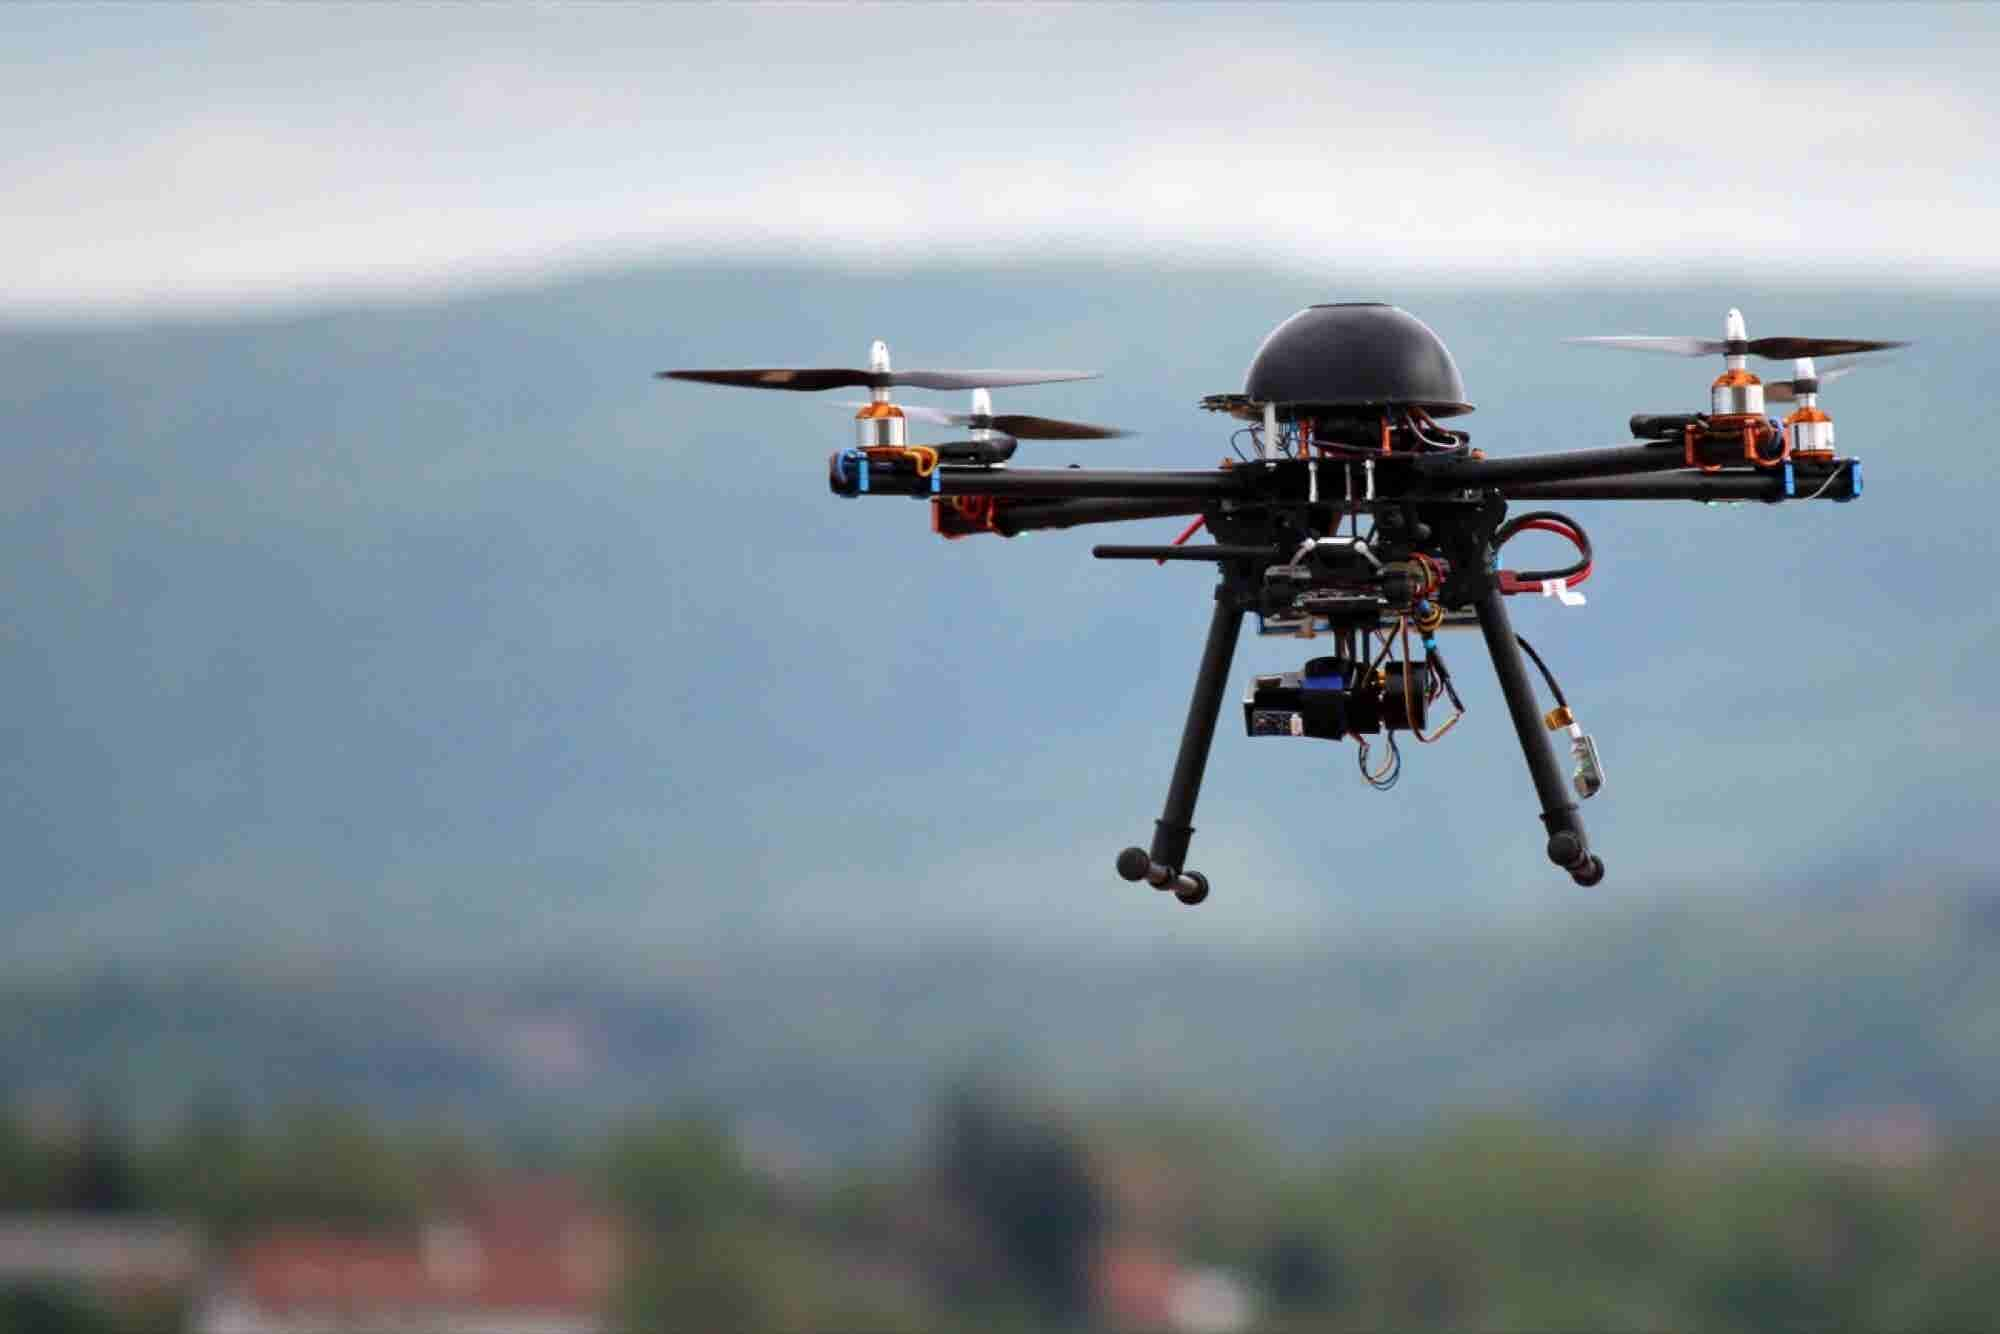 U.S. Issues New Rules on Small Low-Altitude Commercial Drones